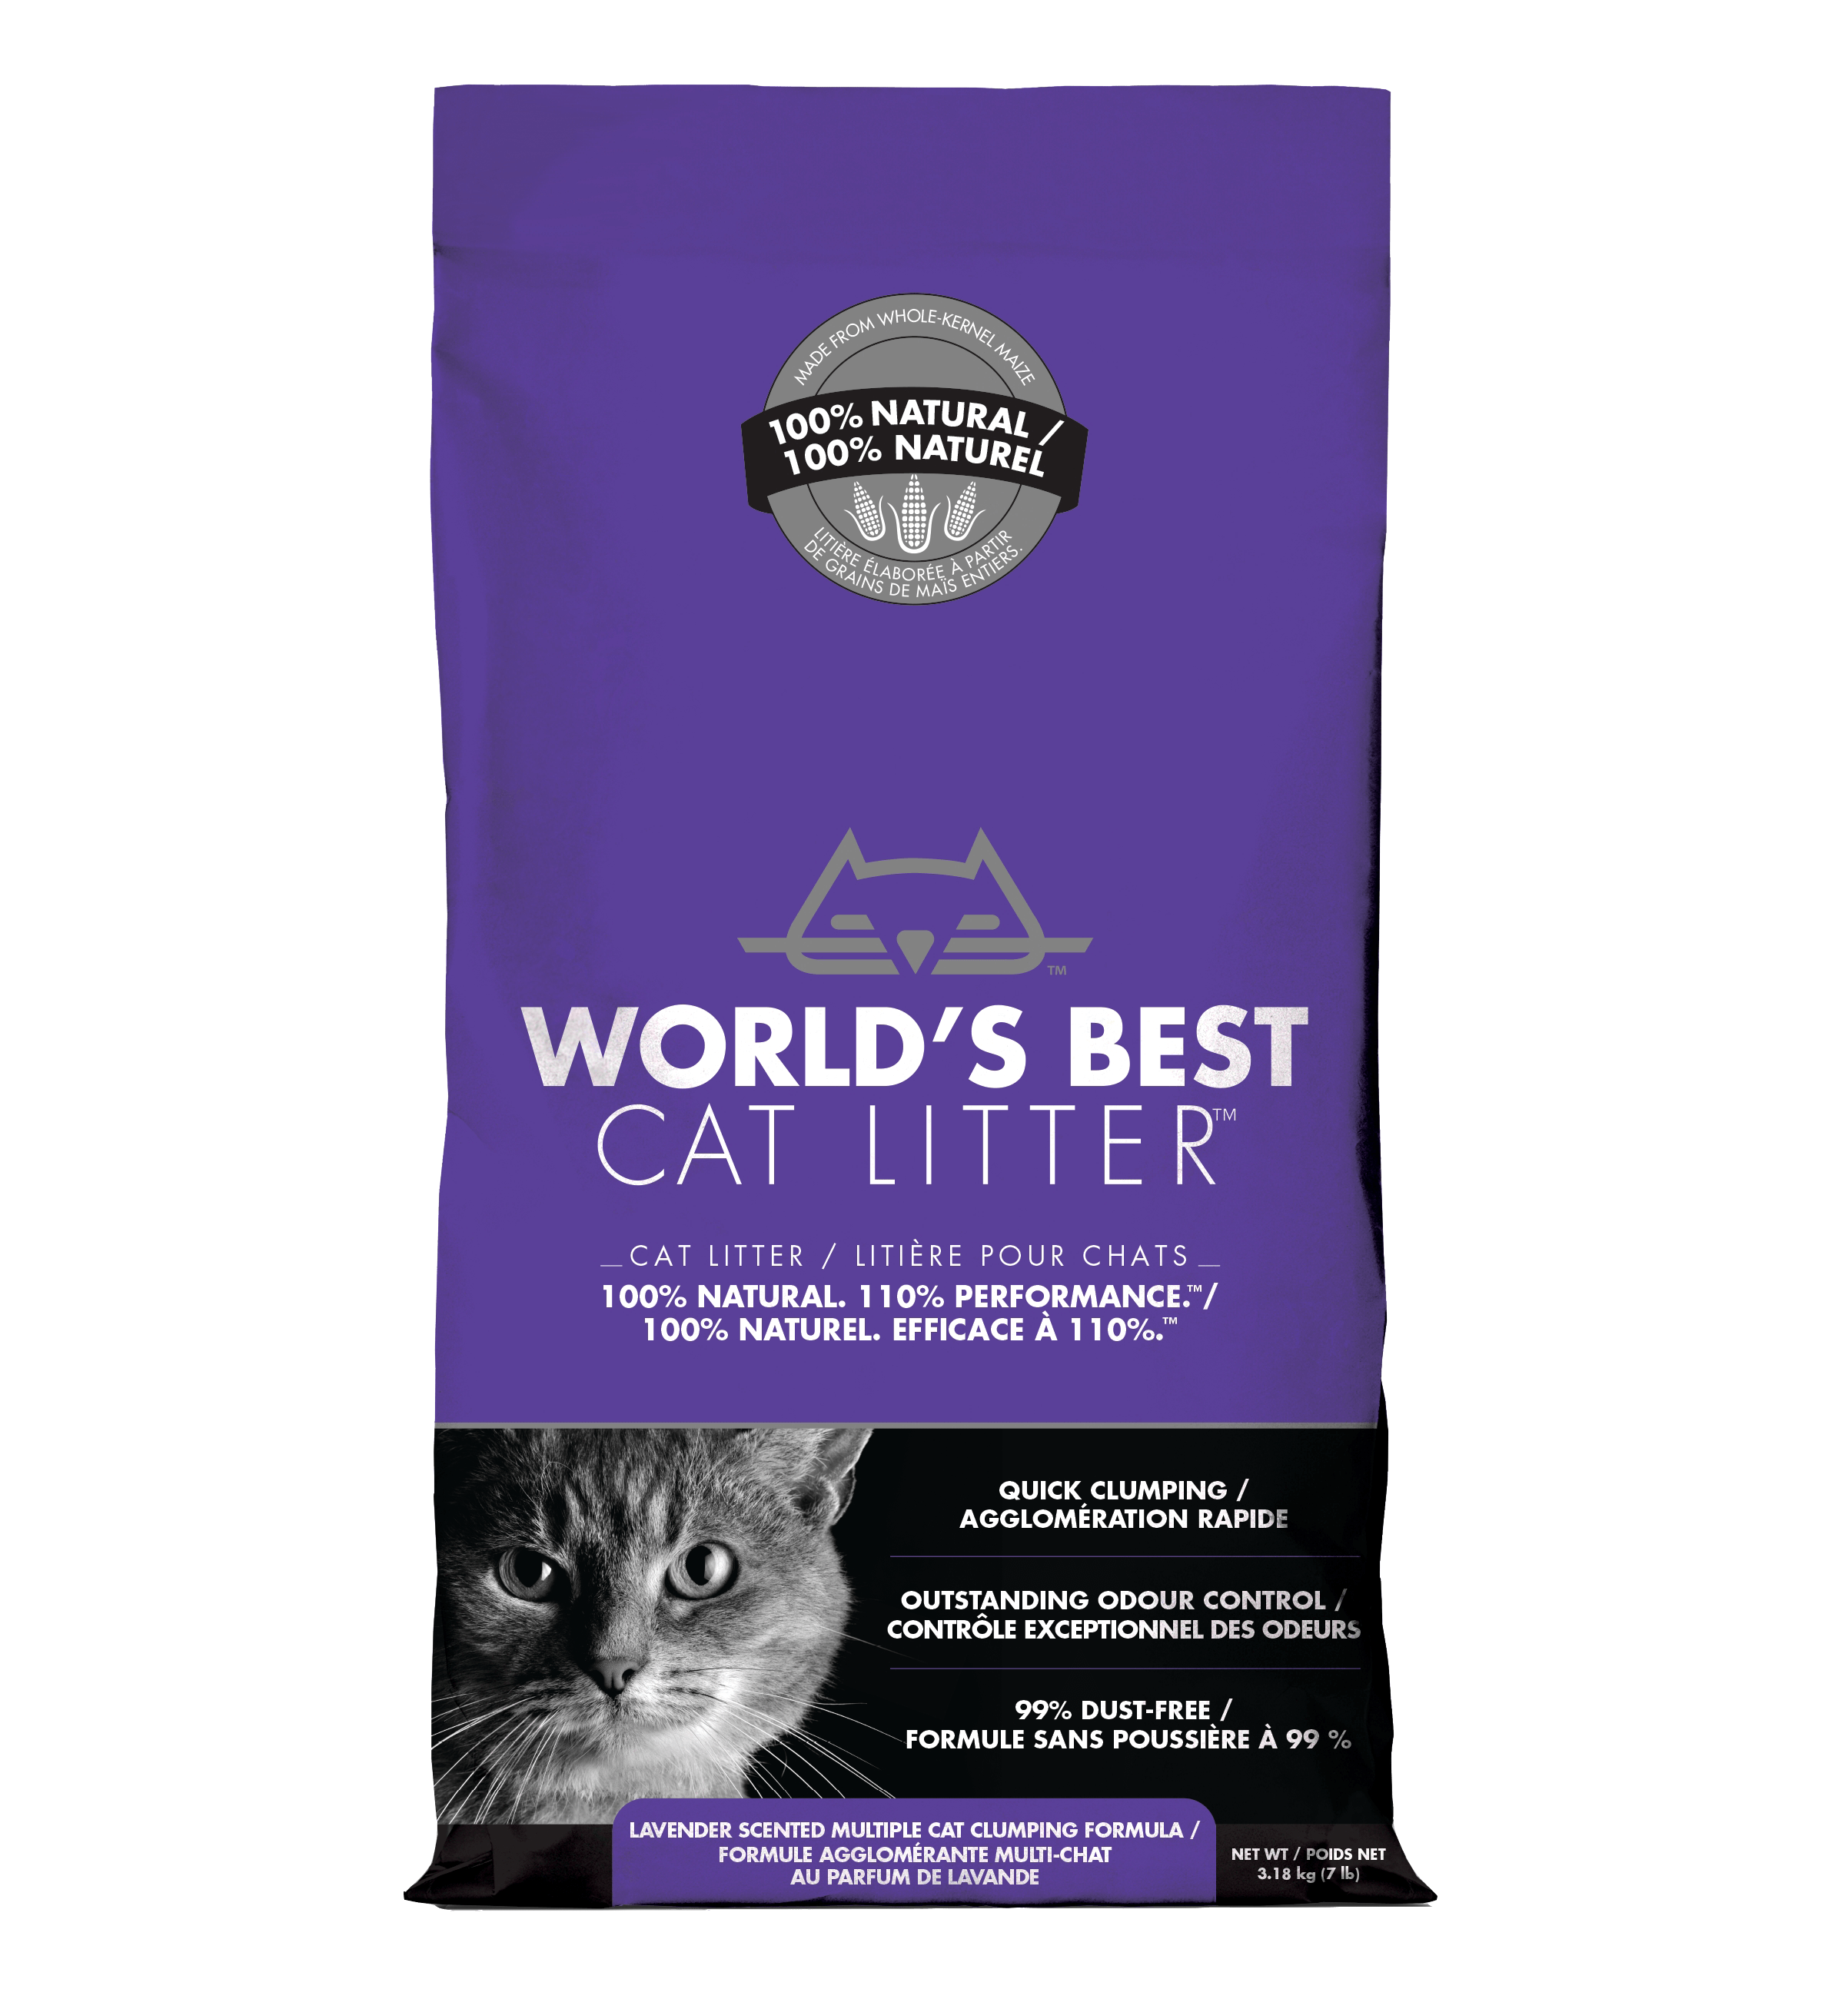 World's Best Cat Litter - Scented Multi Cat Formula | 6.35kg - Click to enlarge picture.